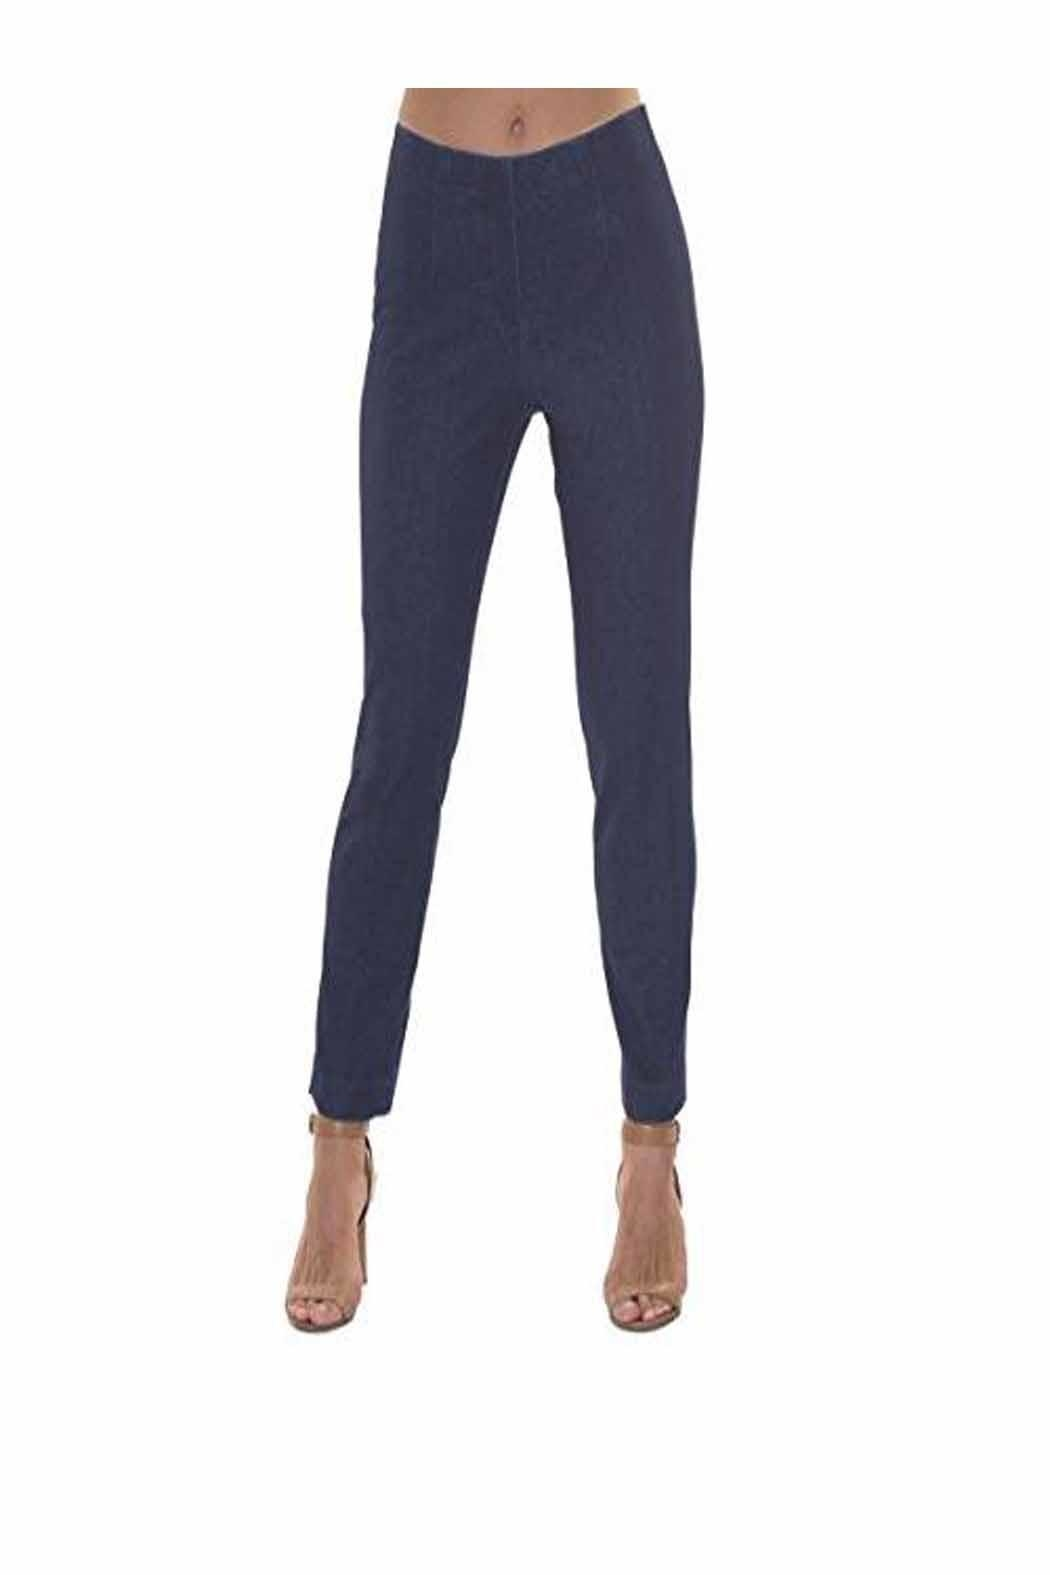 Lior Paris Skinny Ankle Pant - Front Cropped Image